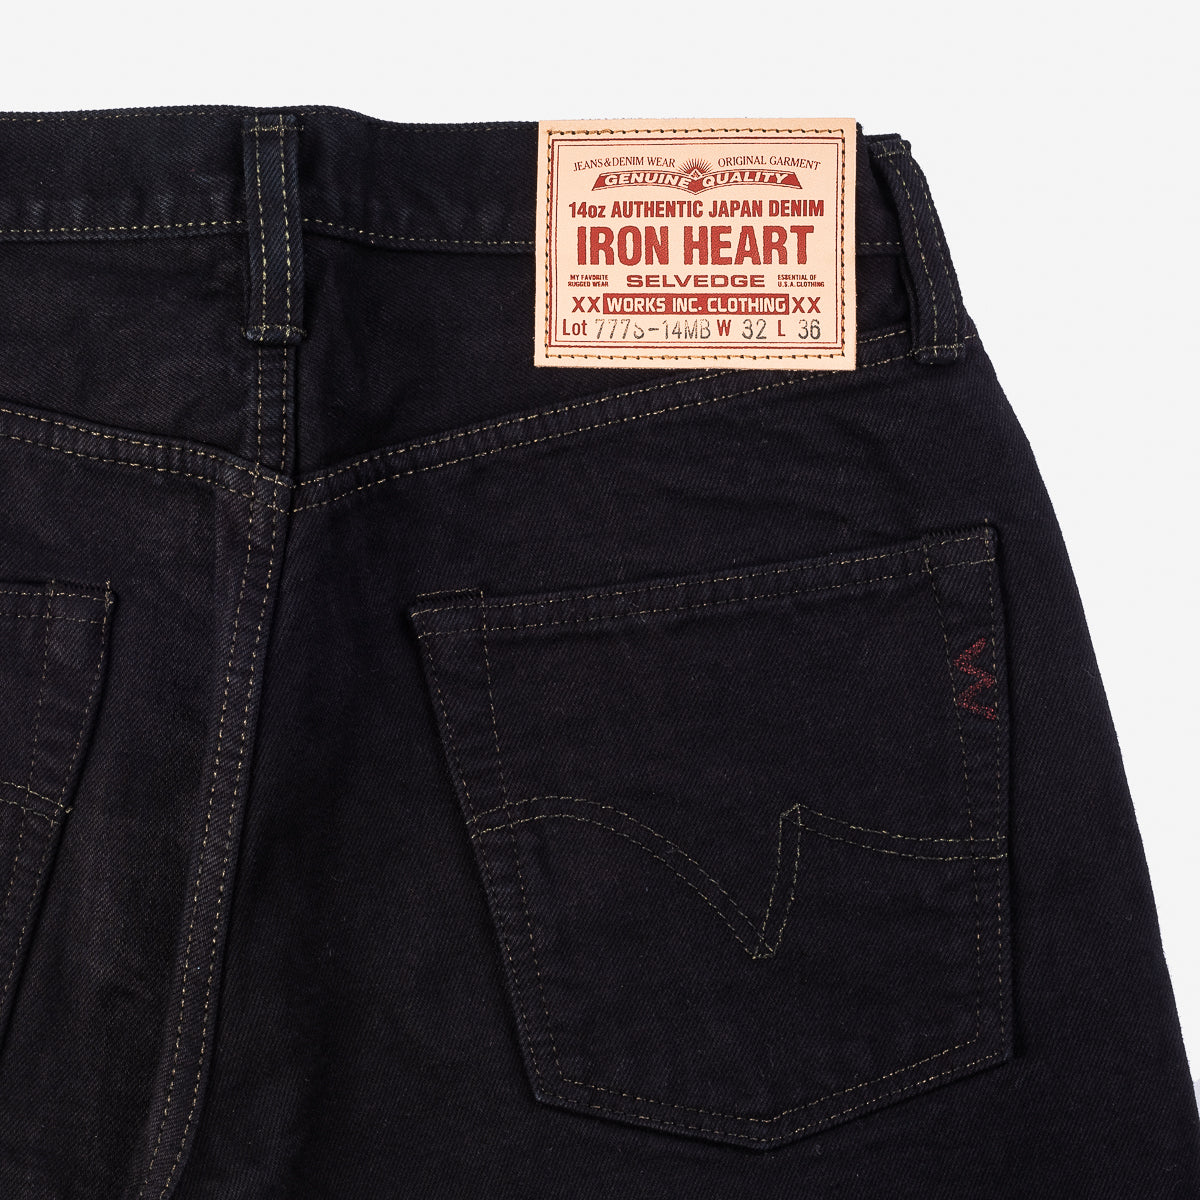 IH-777S-14MB - 14oz Selvedge Denim Jeans Mad Black